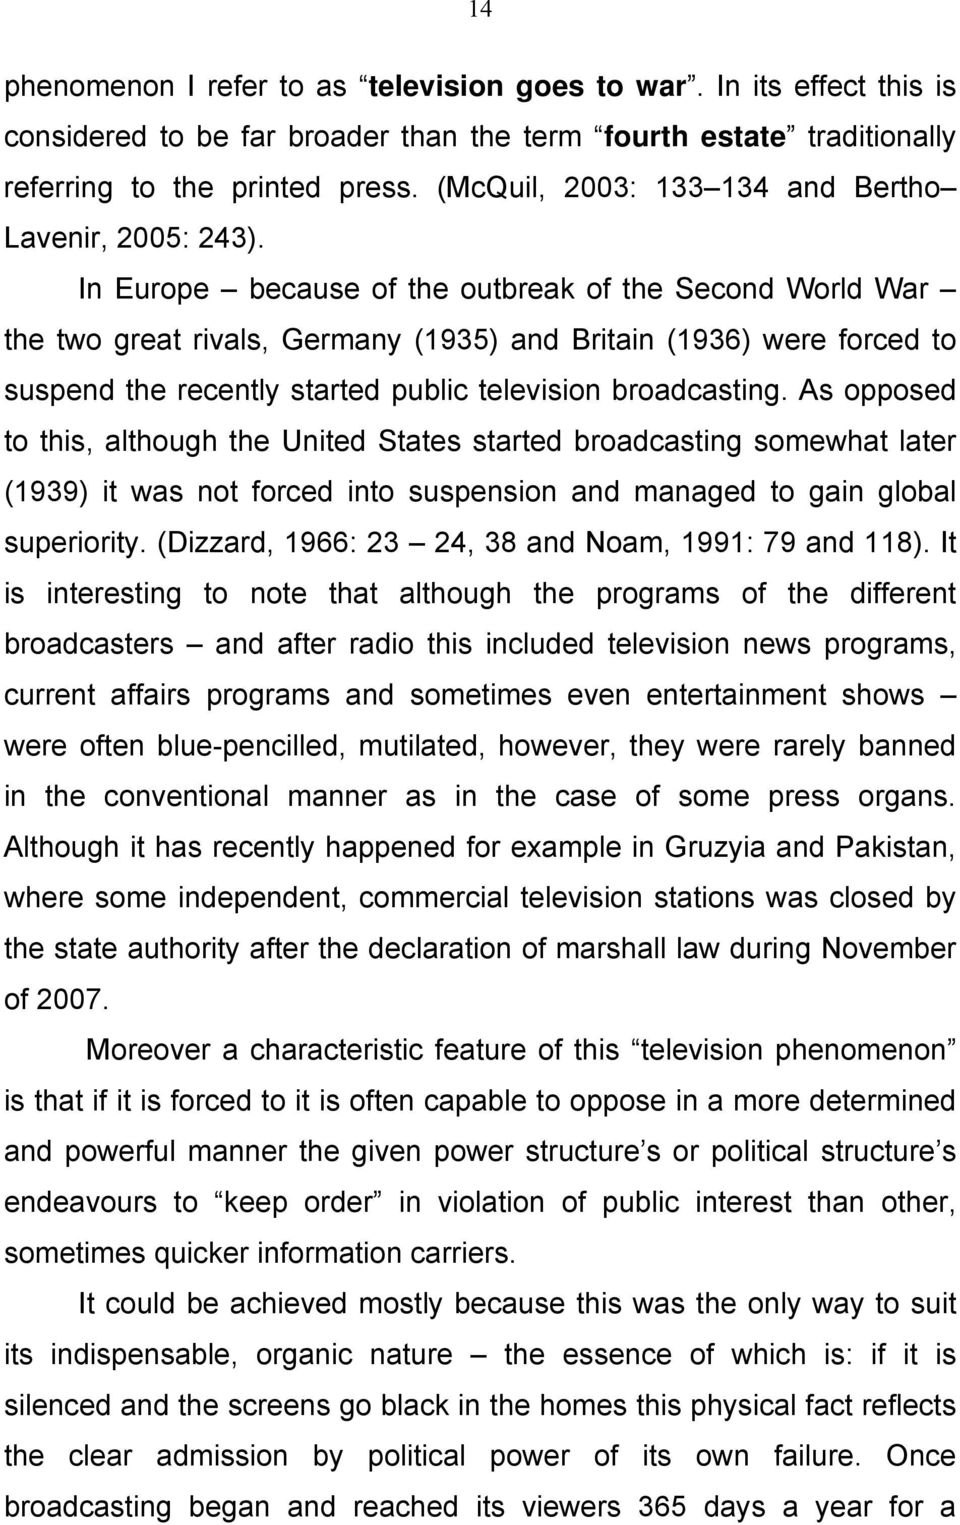 In Europe because of the outbreak of the Second World War the two great rivals, Germany (1935) and Britain (1936) were forced to suspend the recently started public television broadcasting.